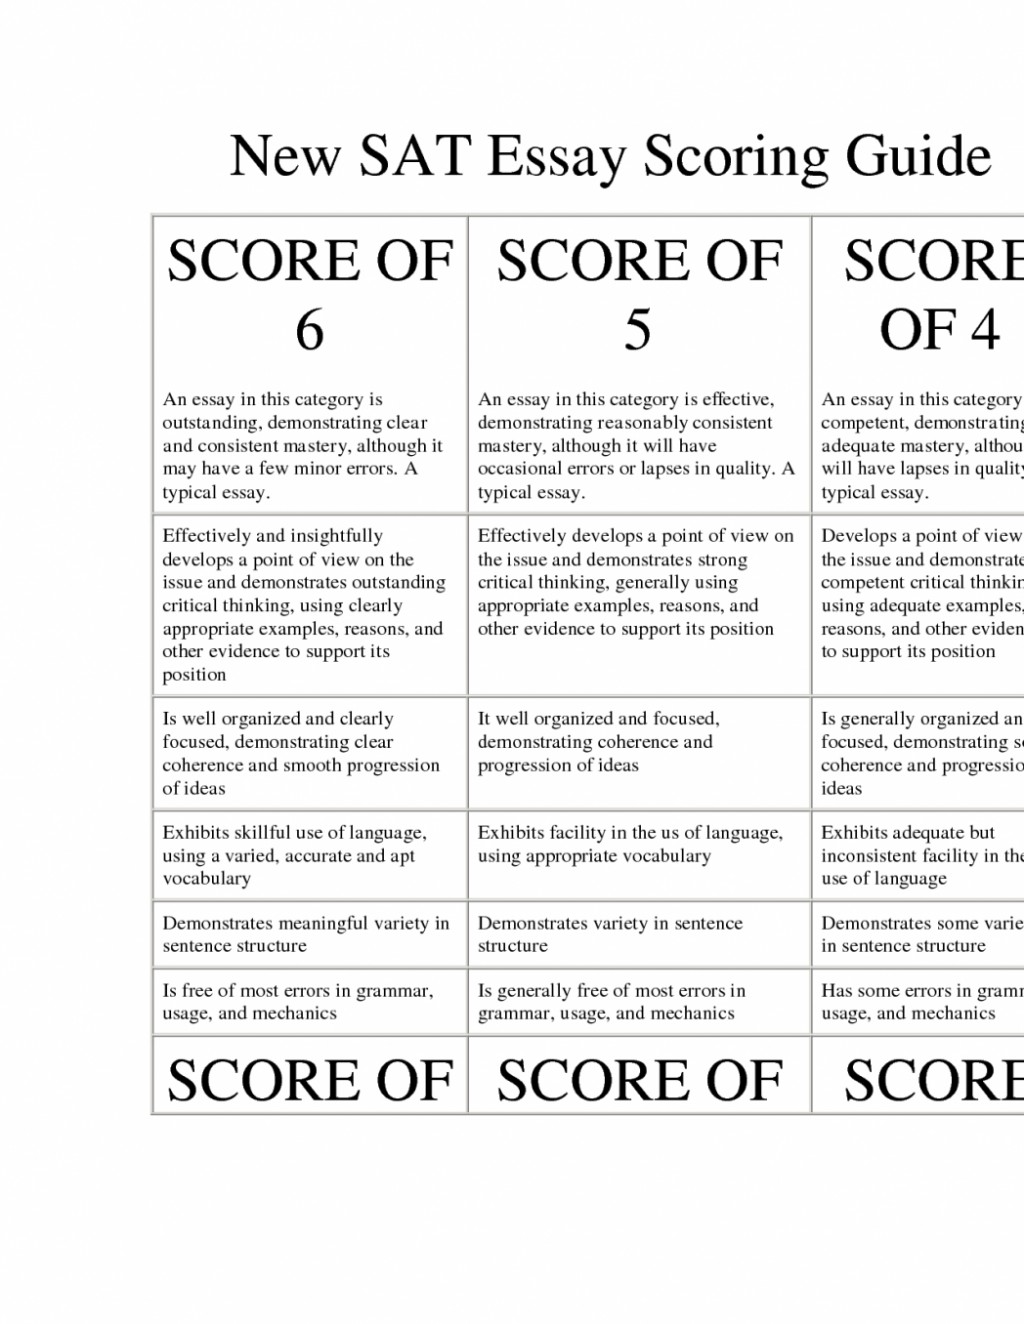 014 Essay Score Sat Goal Blockety Co How To Write Perfect Quotes Quotesgram Is There An On The L Really Good Introduction Conclusion Intro 1048x1356 Example Breathtaking Format Guidelines Exam Paper Form Large